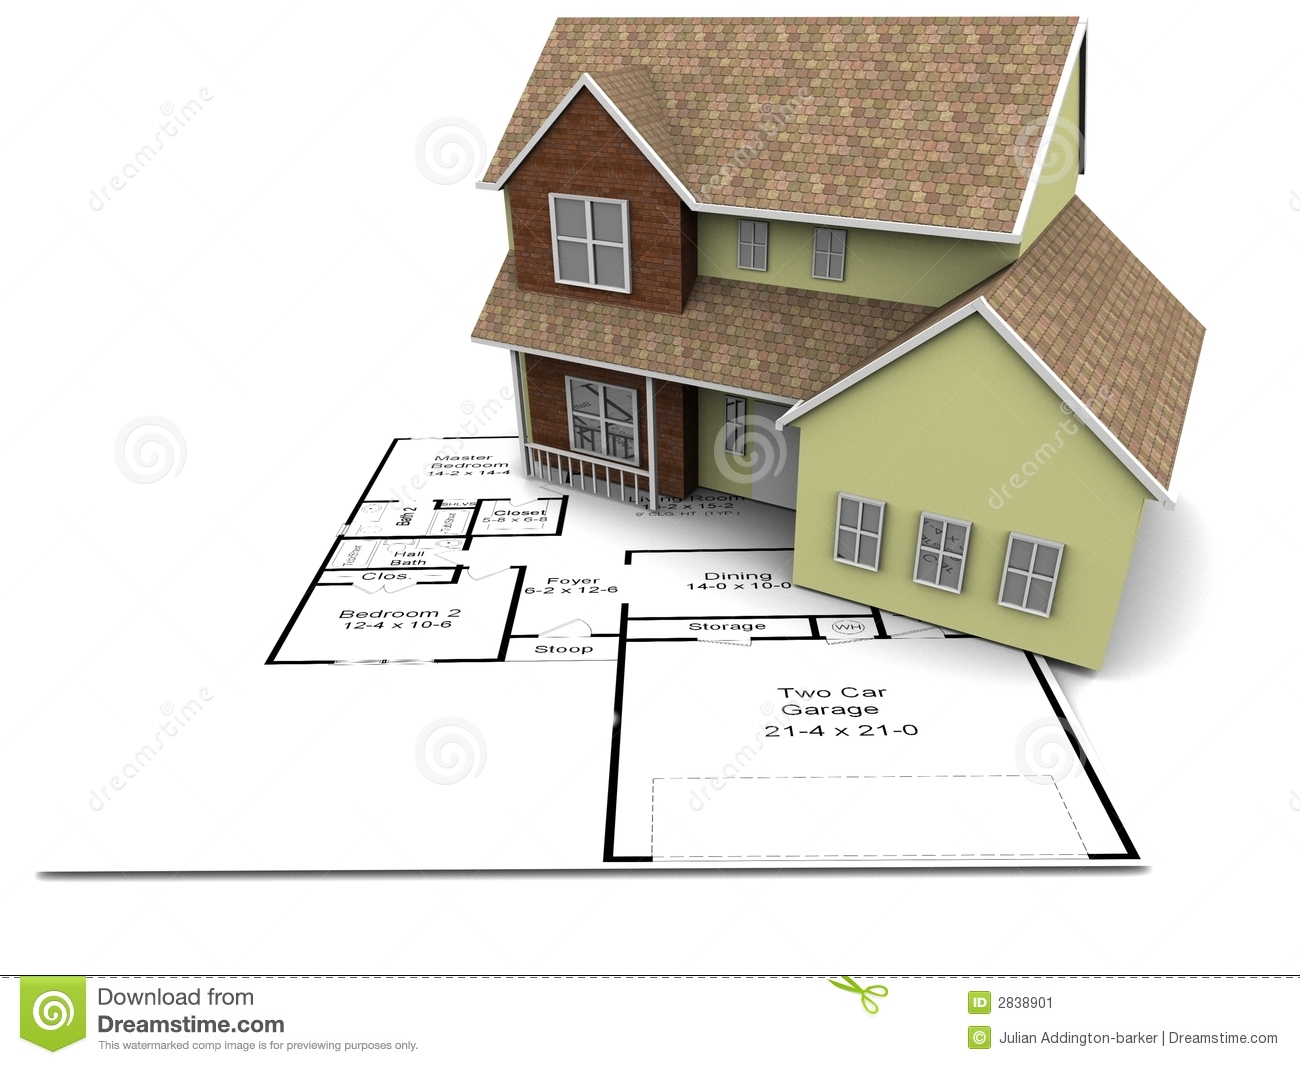 New house plans stock image image 2838901 for New home plans and pictures